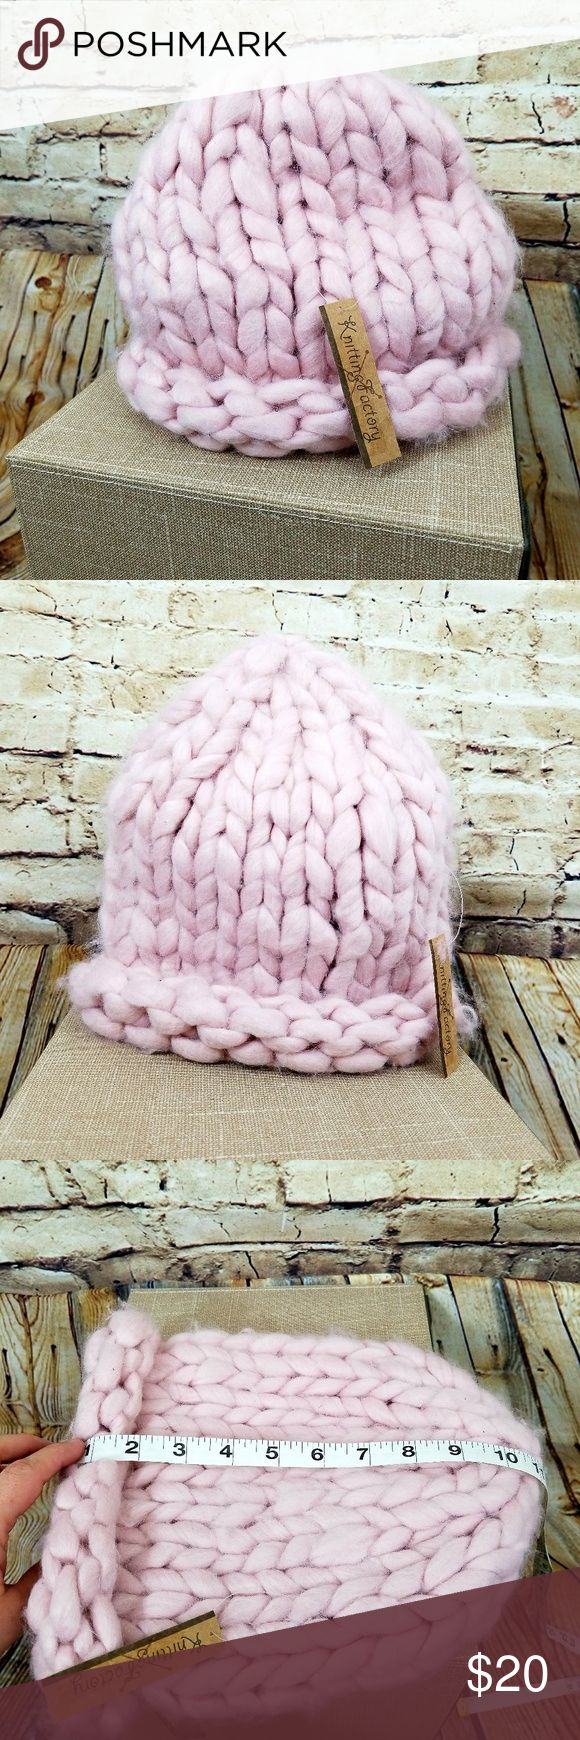 Ladies winter hat soft BNWT pink wide knit Ladies winter hat soft BNWT pink wide knit Pale soft pink Roll brim Adult size knitting factory Accessories